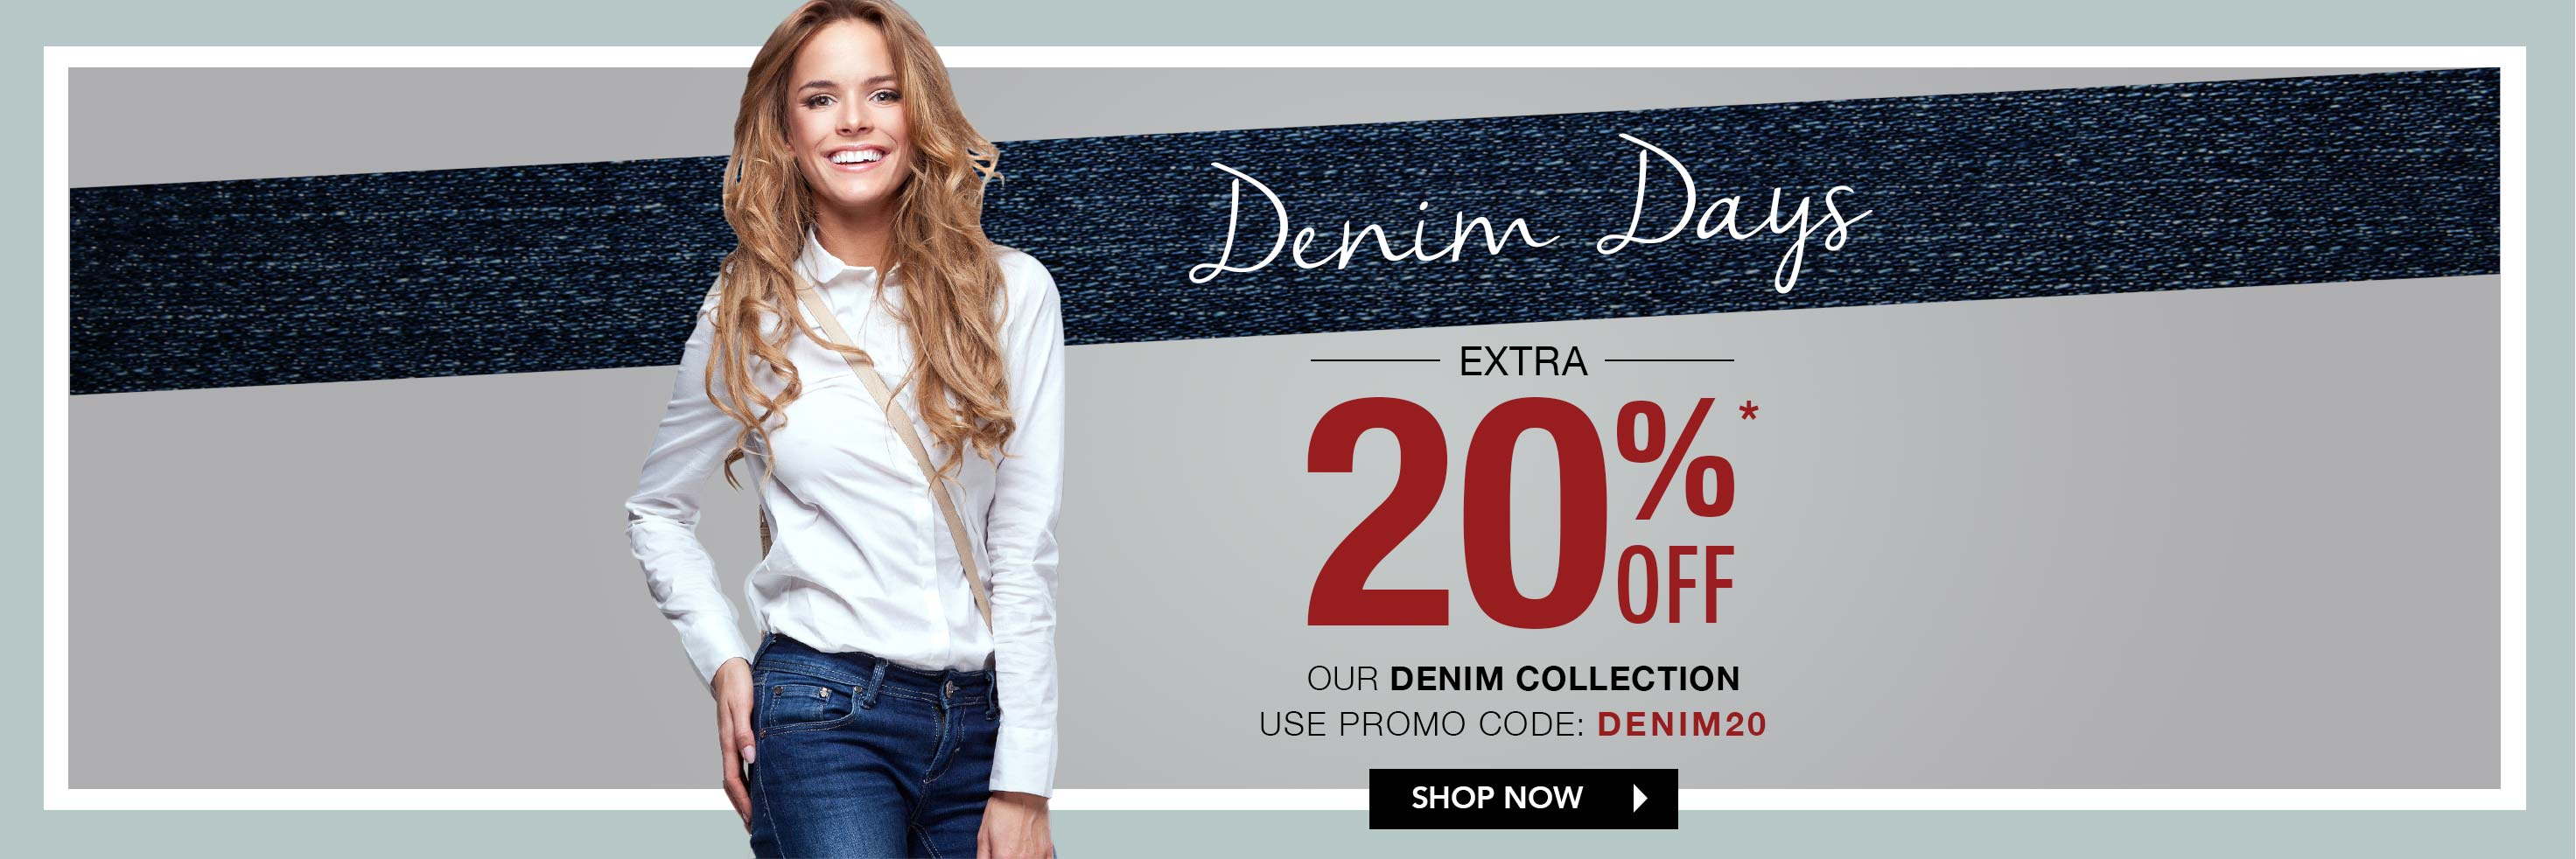 Denim Days - Extra 20%* off!